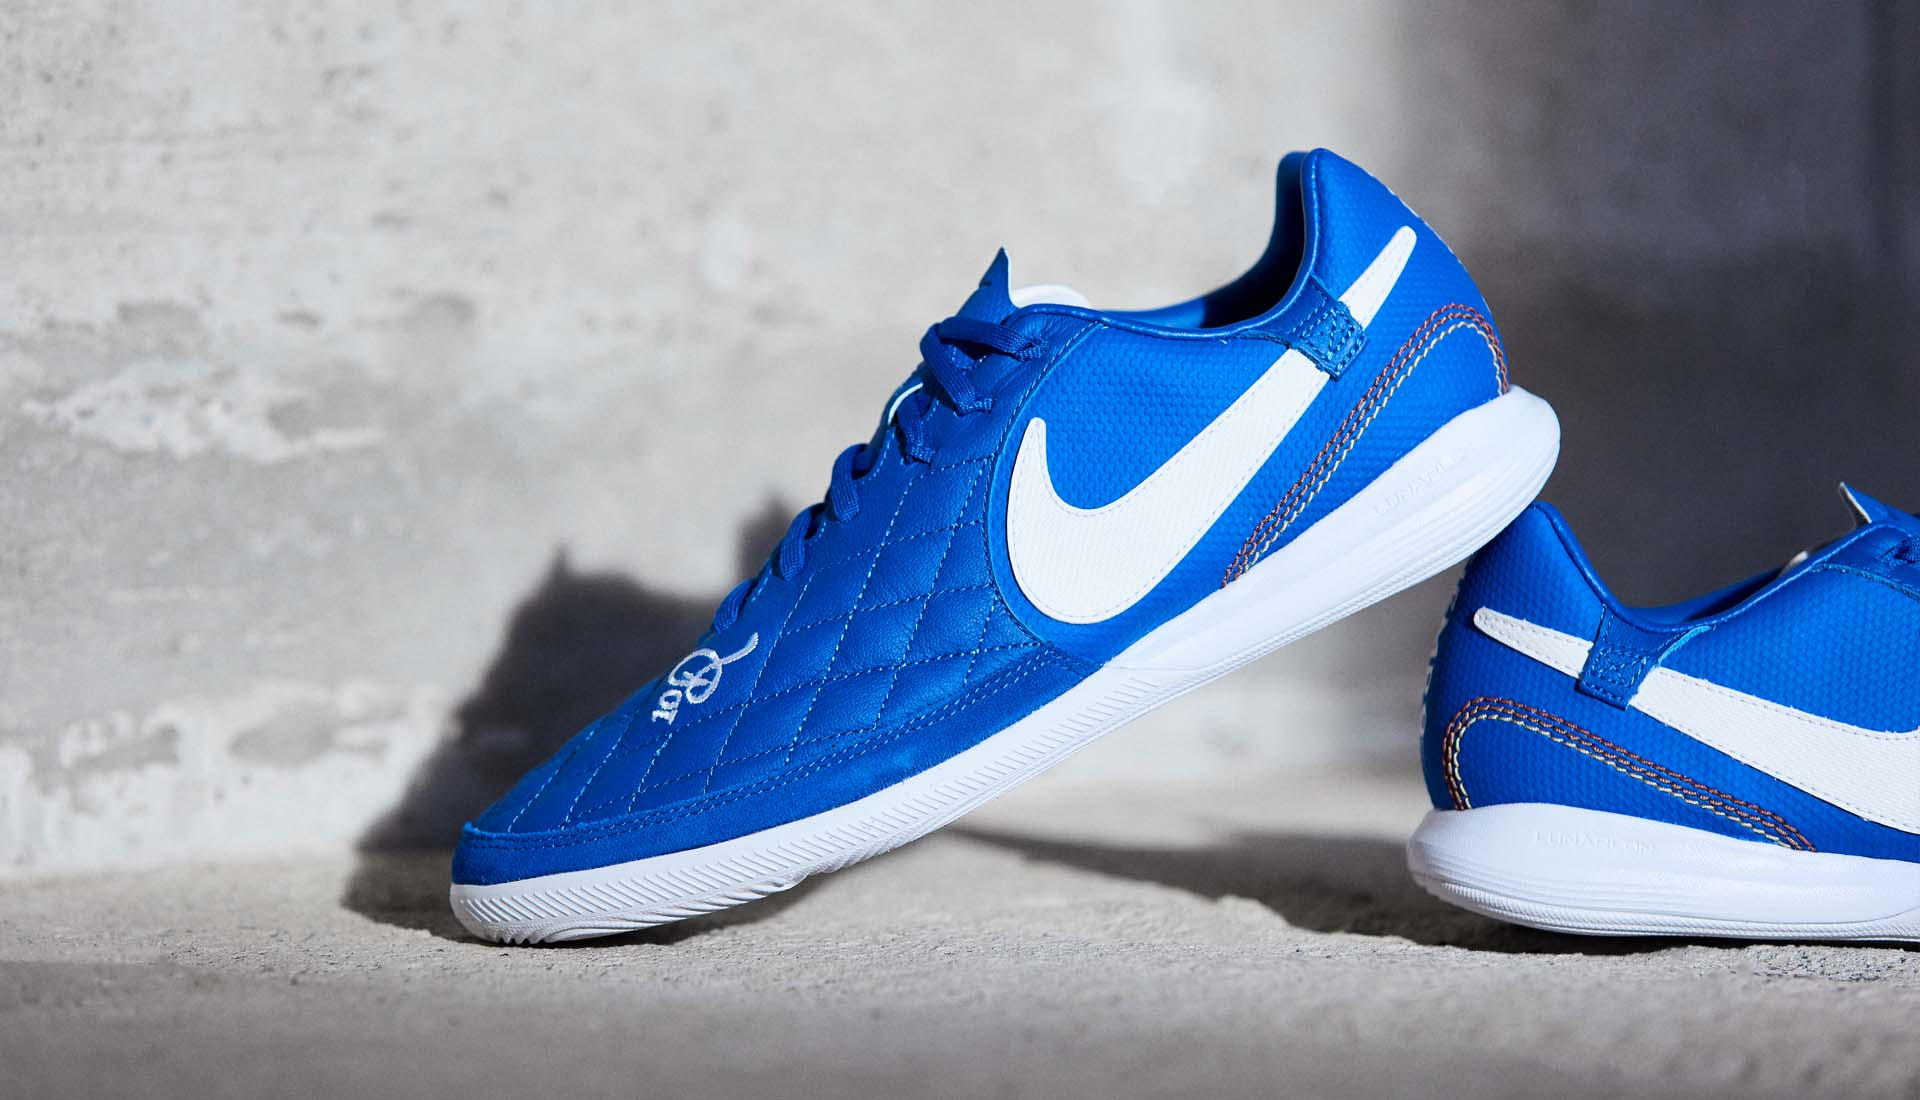 peso George Eliot Temporizador  Nike Launch R10 Tiempo Lunar Legend VII - SoccerBible